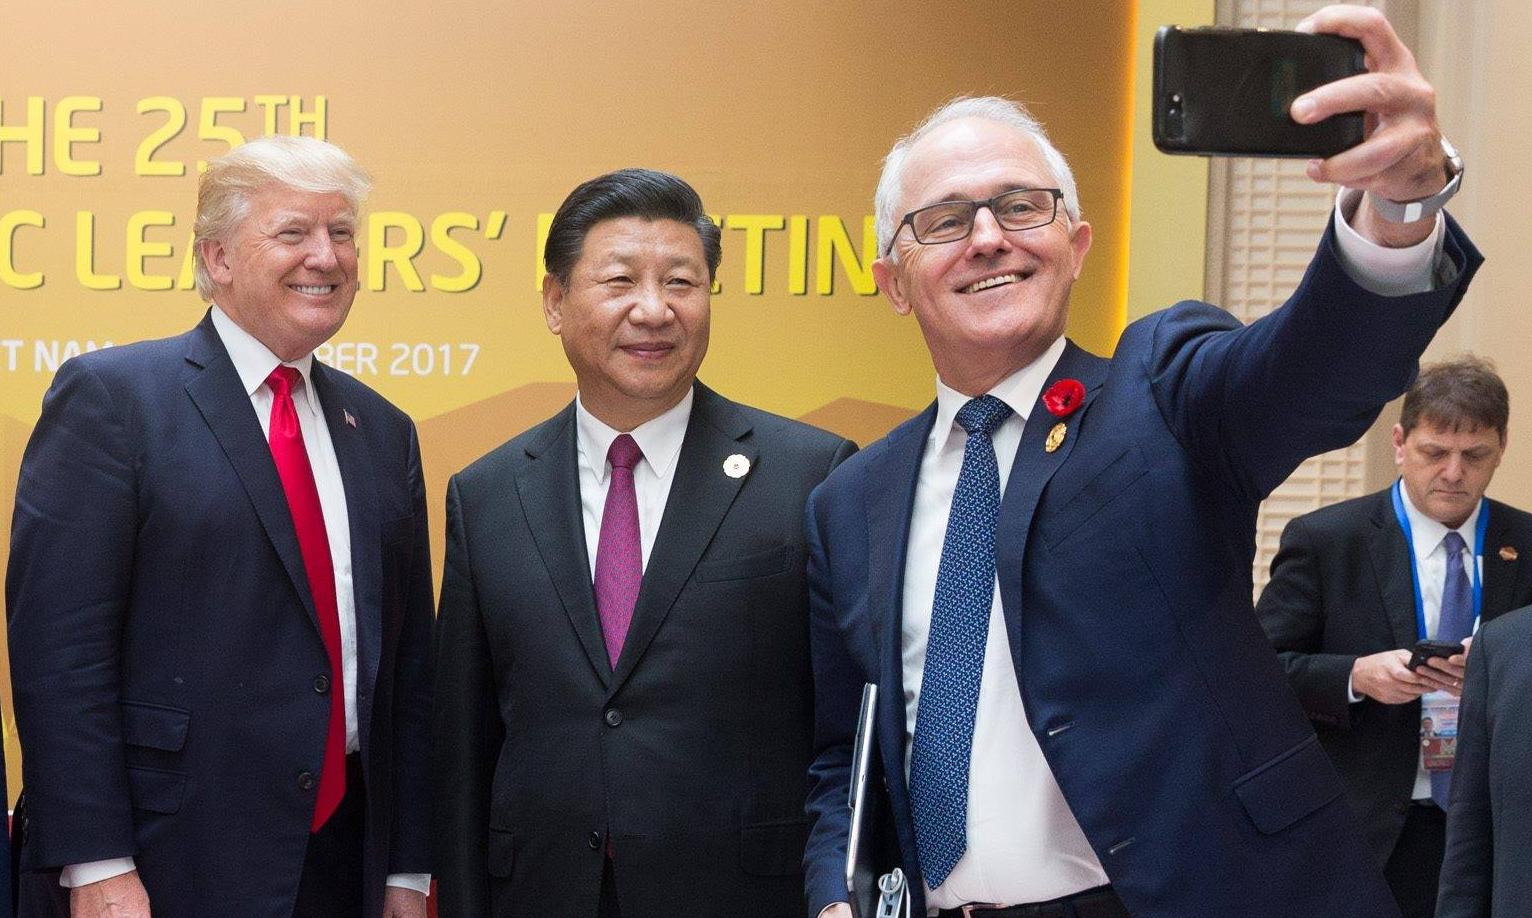 US President Trump said that his friendship with President Xi Jinping and US-China relations are both very important. Pic for representational purpose only.